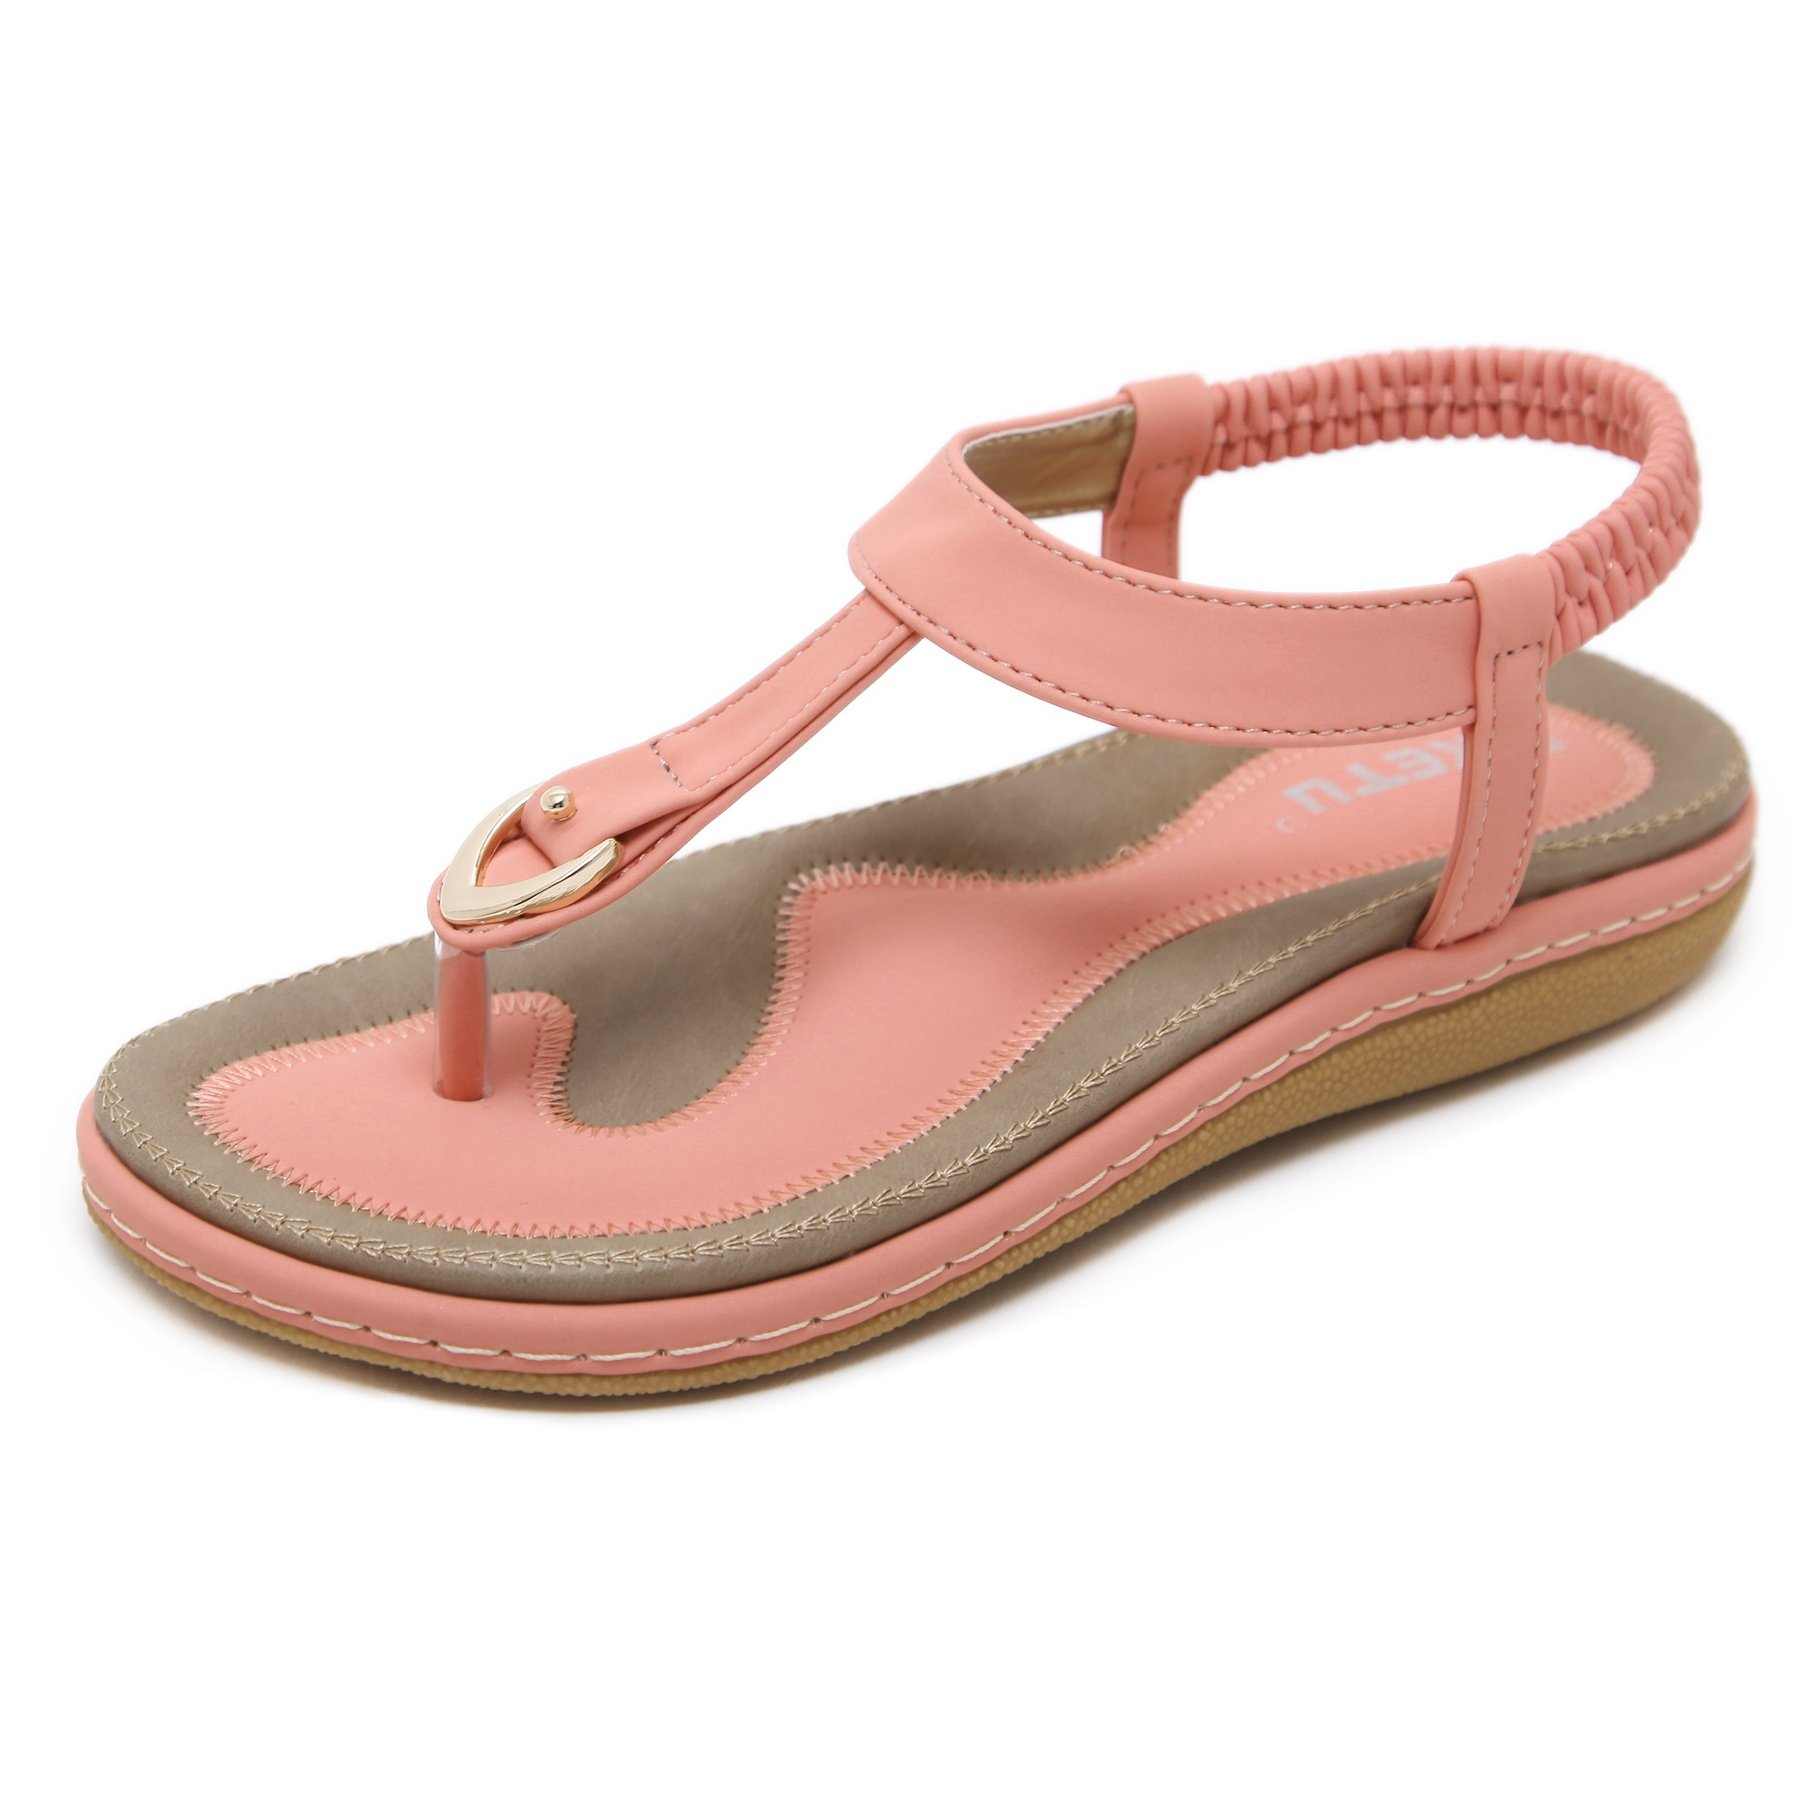 Wollanlily Women Summer Beach Flat Sandals T-Strap Elastic Ankle Strap Flip-Flop Thong Shoes Pink-01 US 10